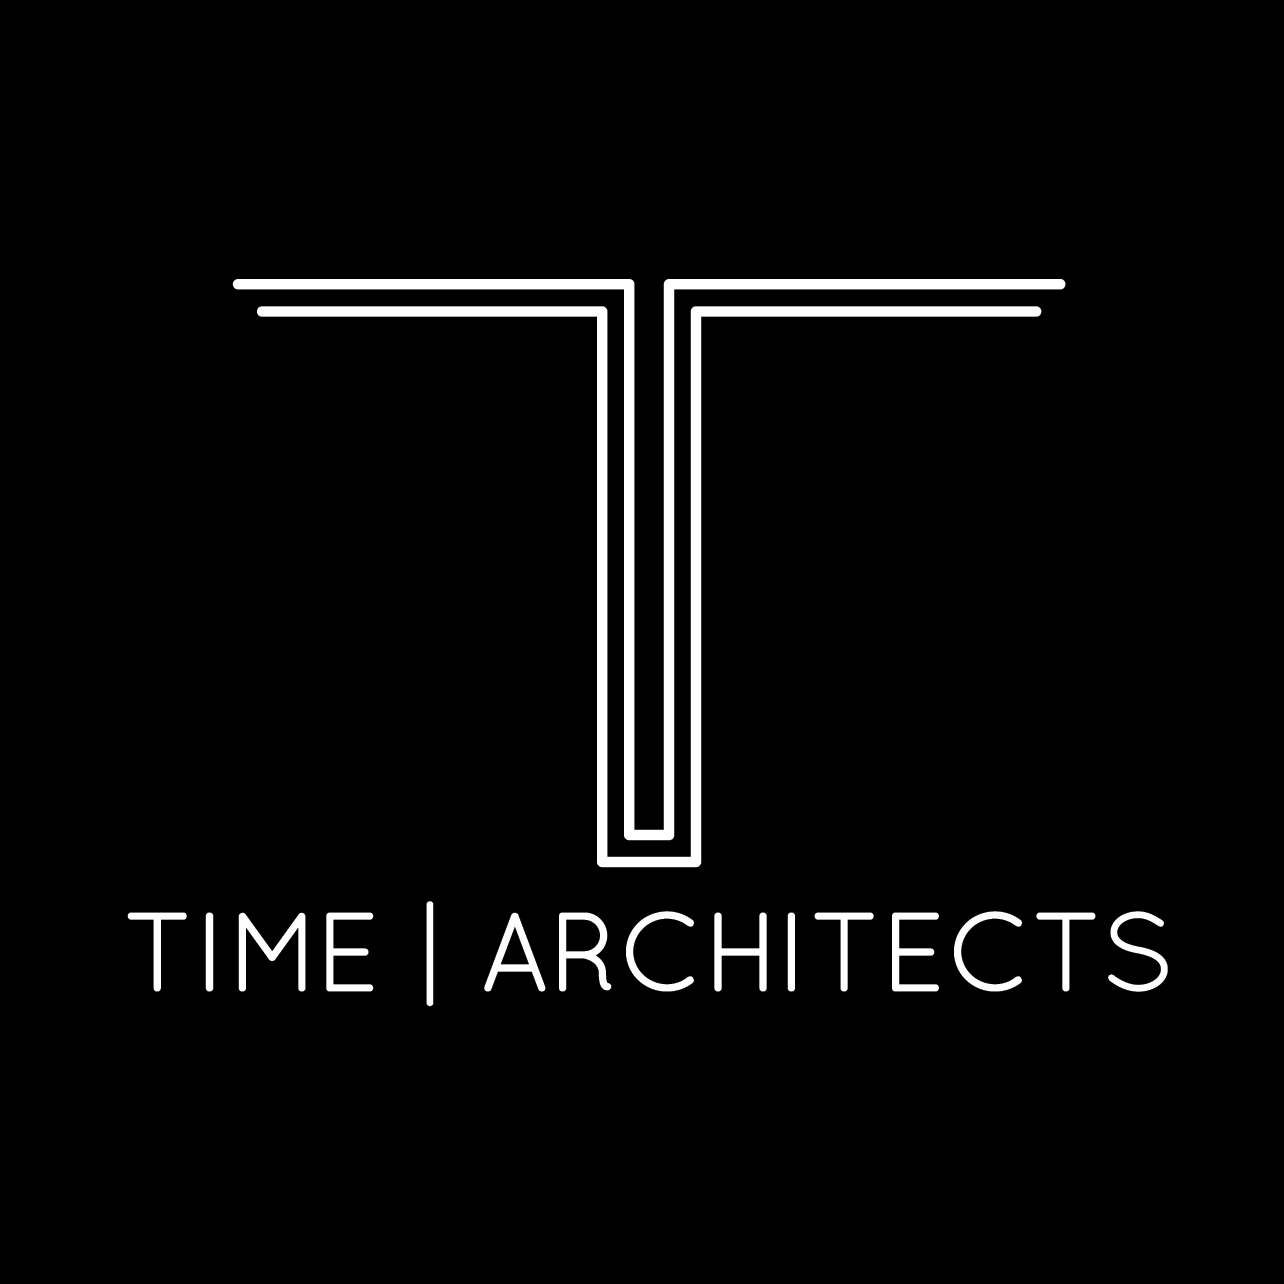 Time Architects